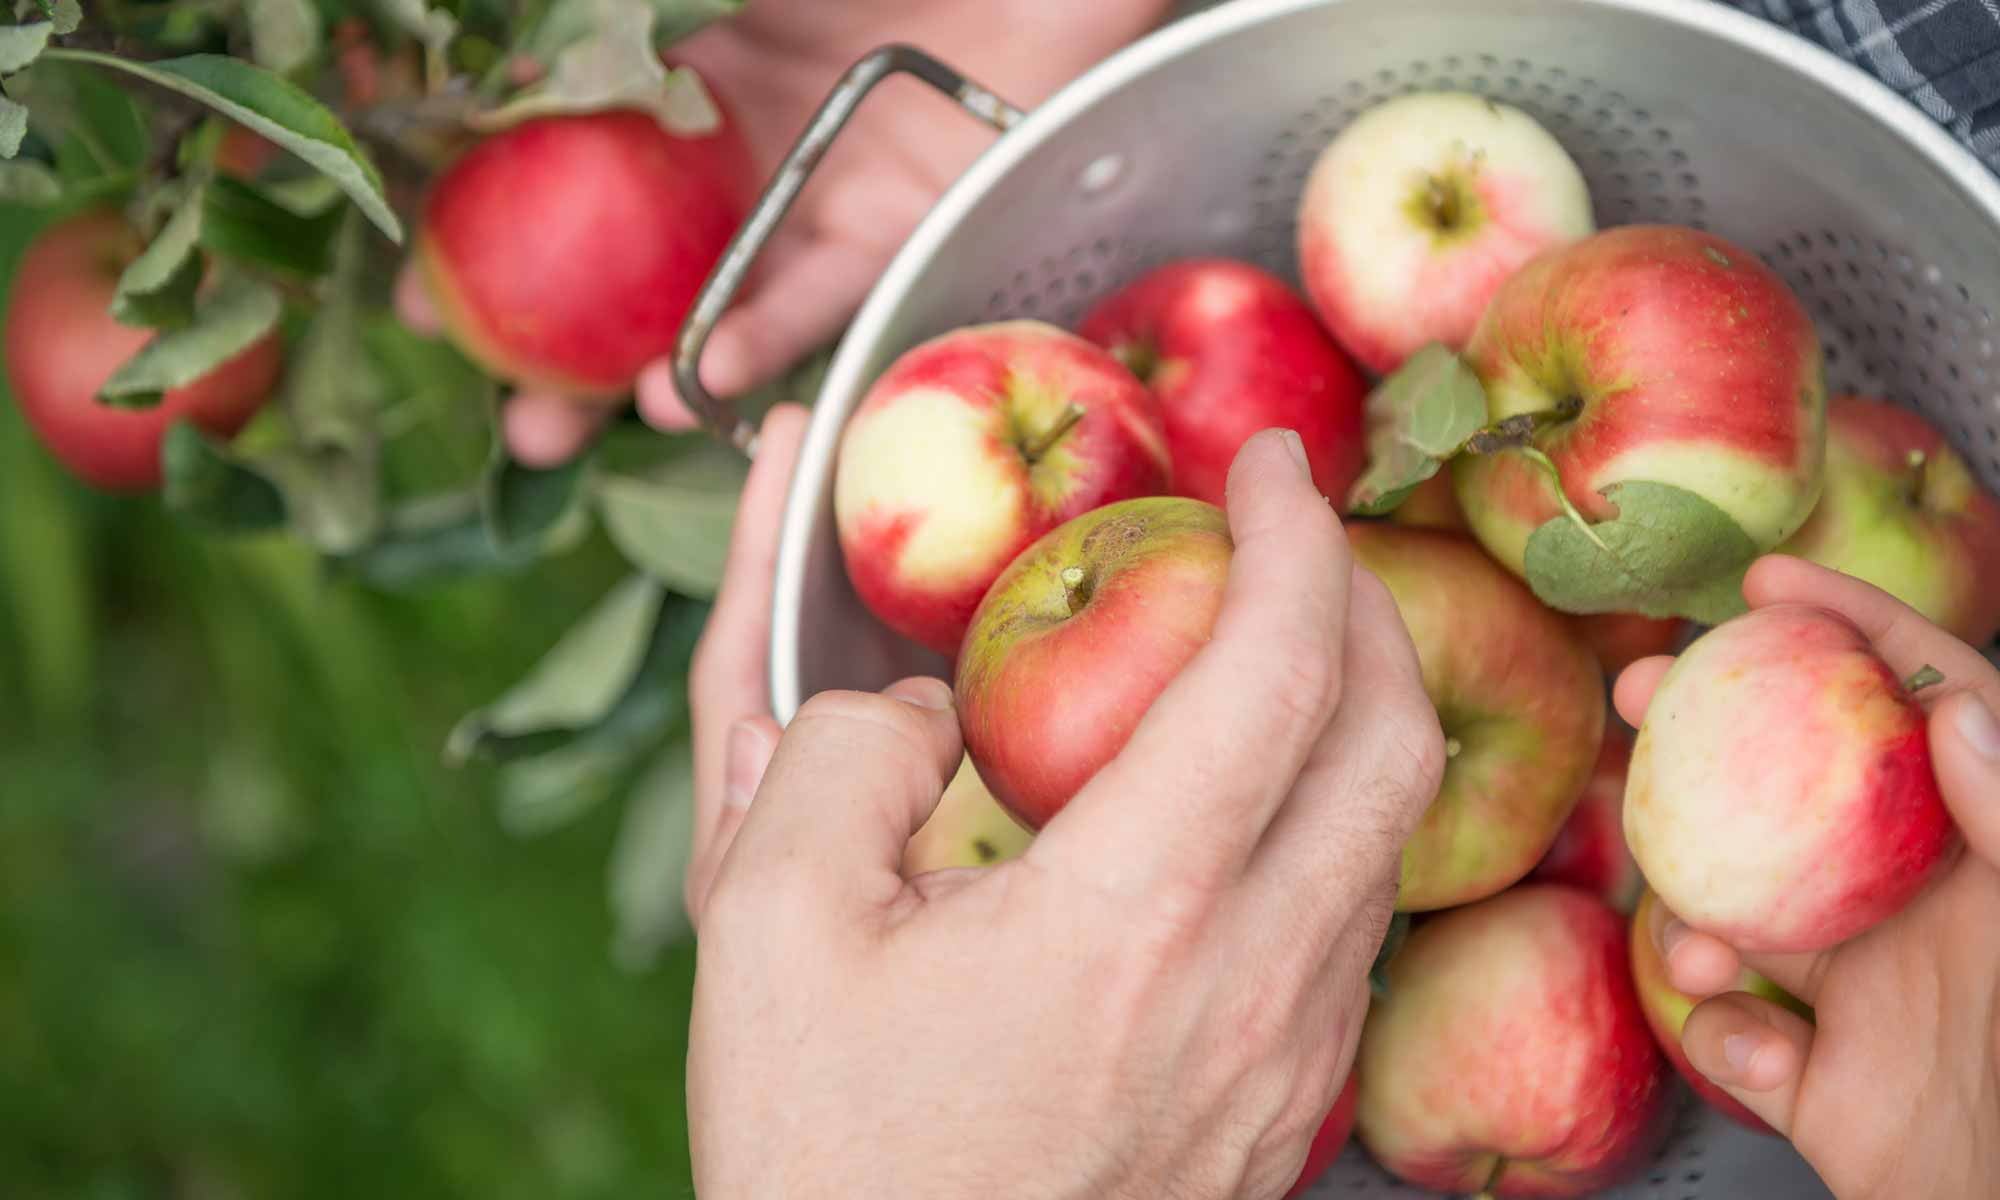 Hands picking red apples and putting them in a bucket